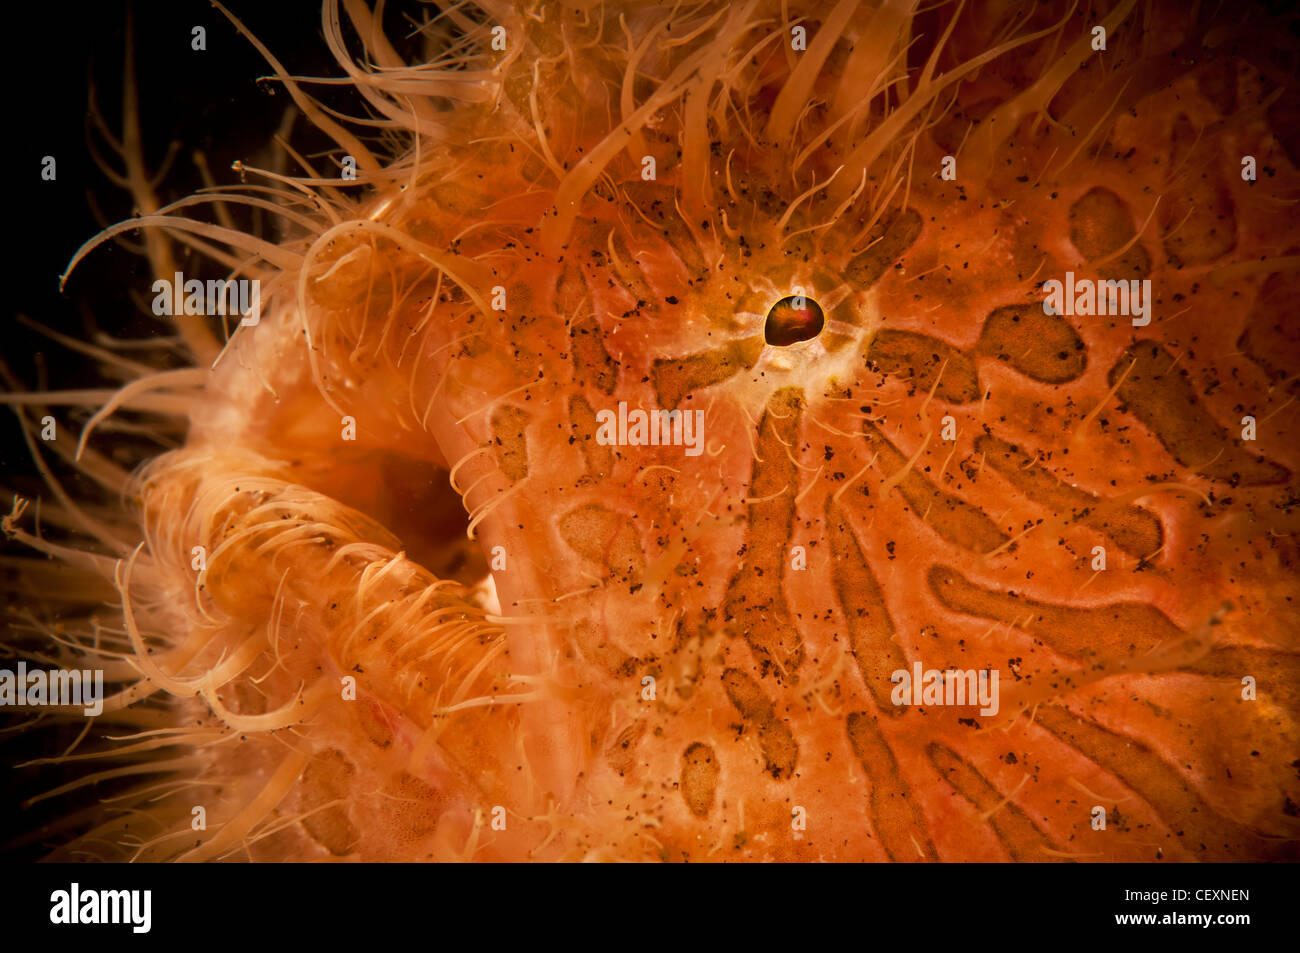 Hairy frogfish, Lembeh, Indonesia, Asia - Stock Image